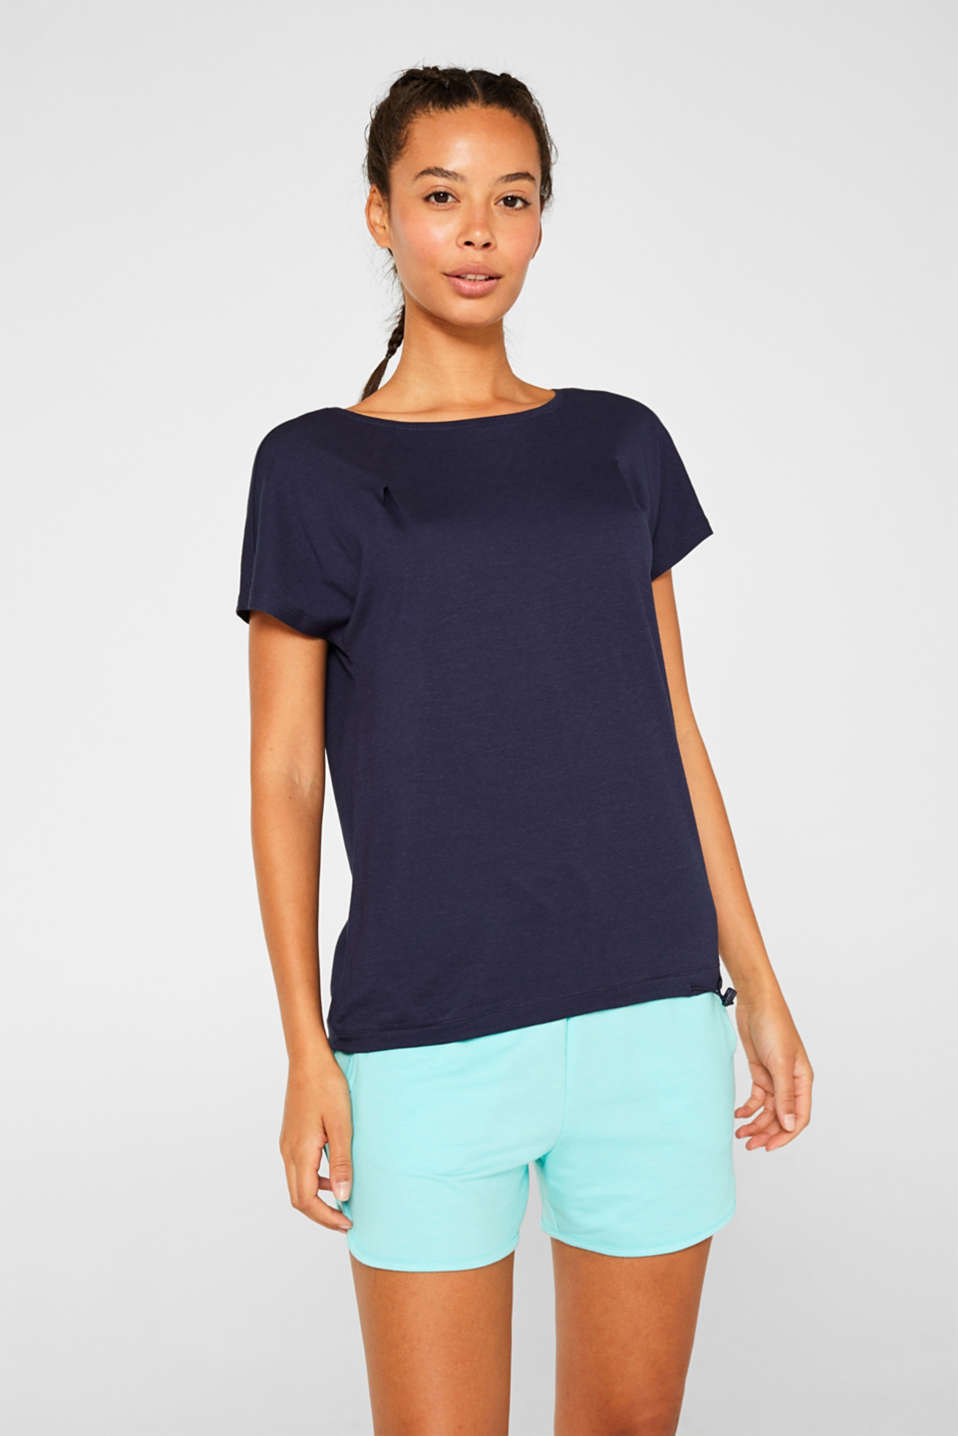 Esprit - T-shirt with a drawstring hem, cotton modal blend